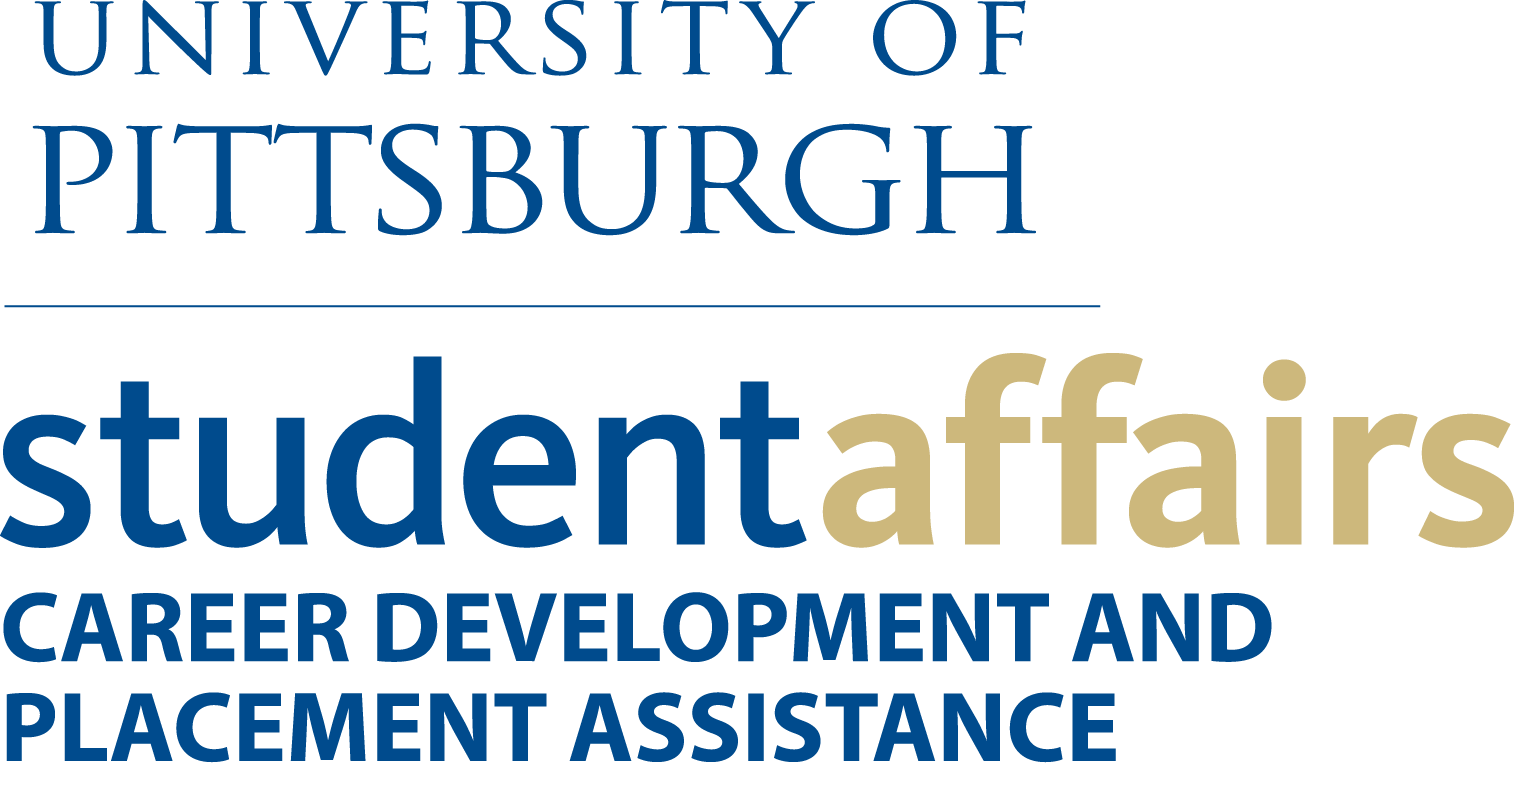 University of Pittsburgh Career Development Placement Assistance Logo.png